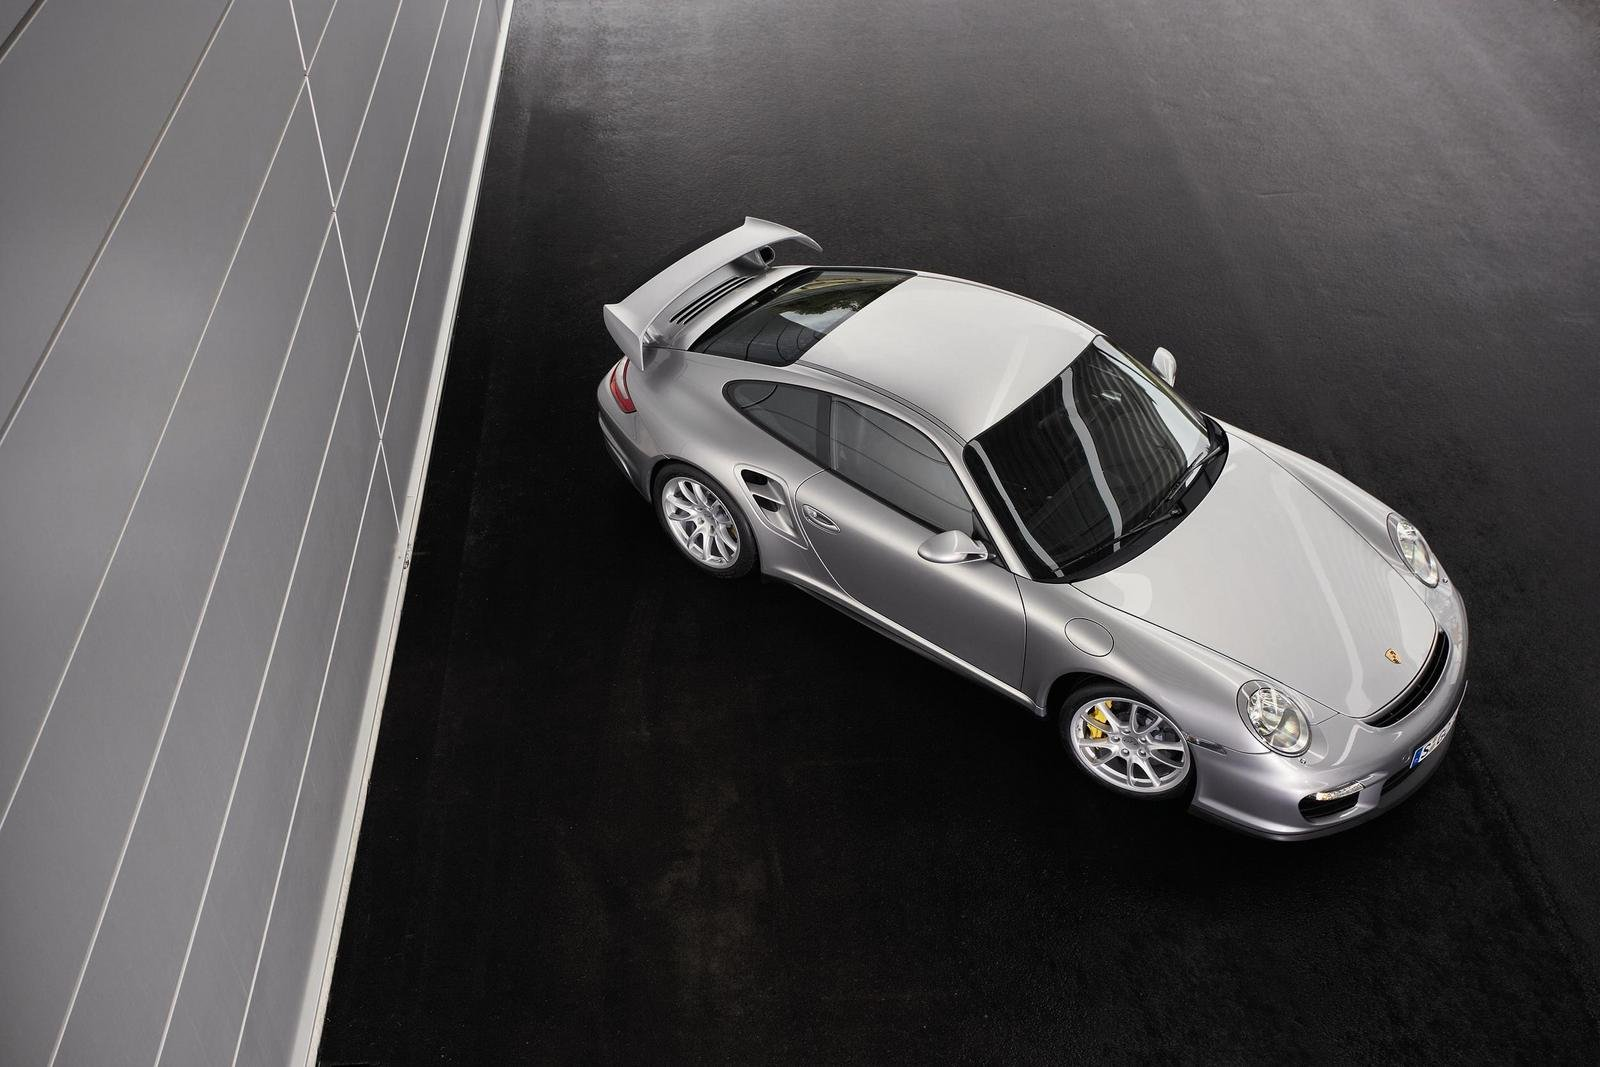 2008 porsche 911 gt2 picture 205460 car review top speed. Black Bedroom Furniture Sets. Home Design Ideas